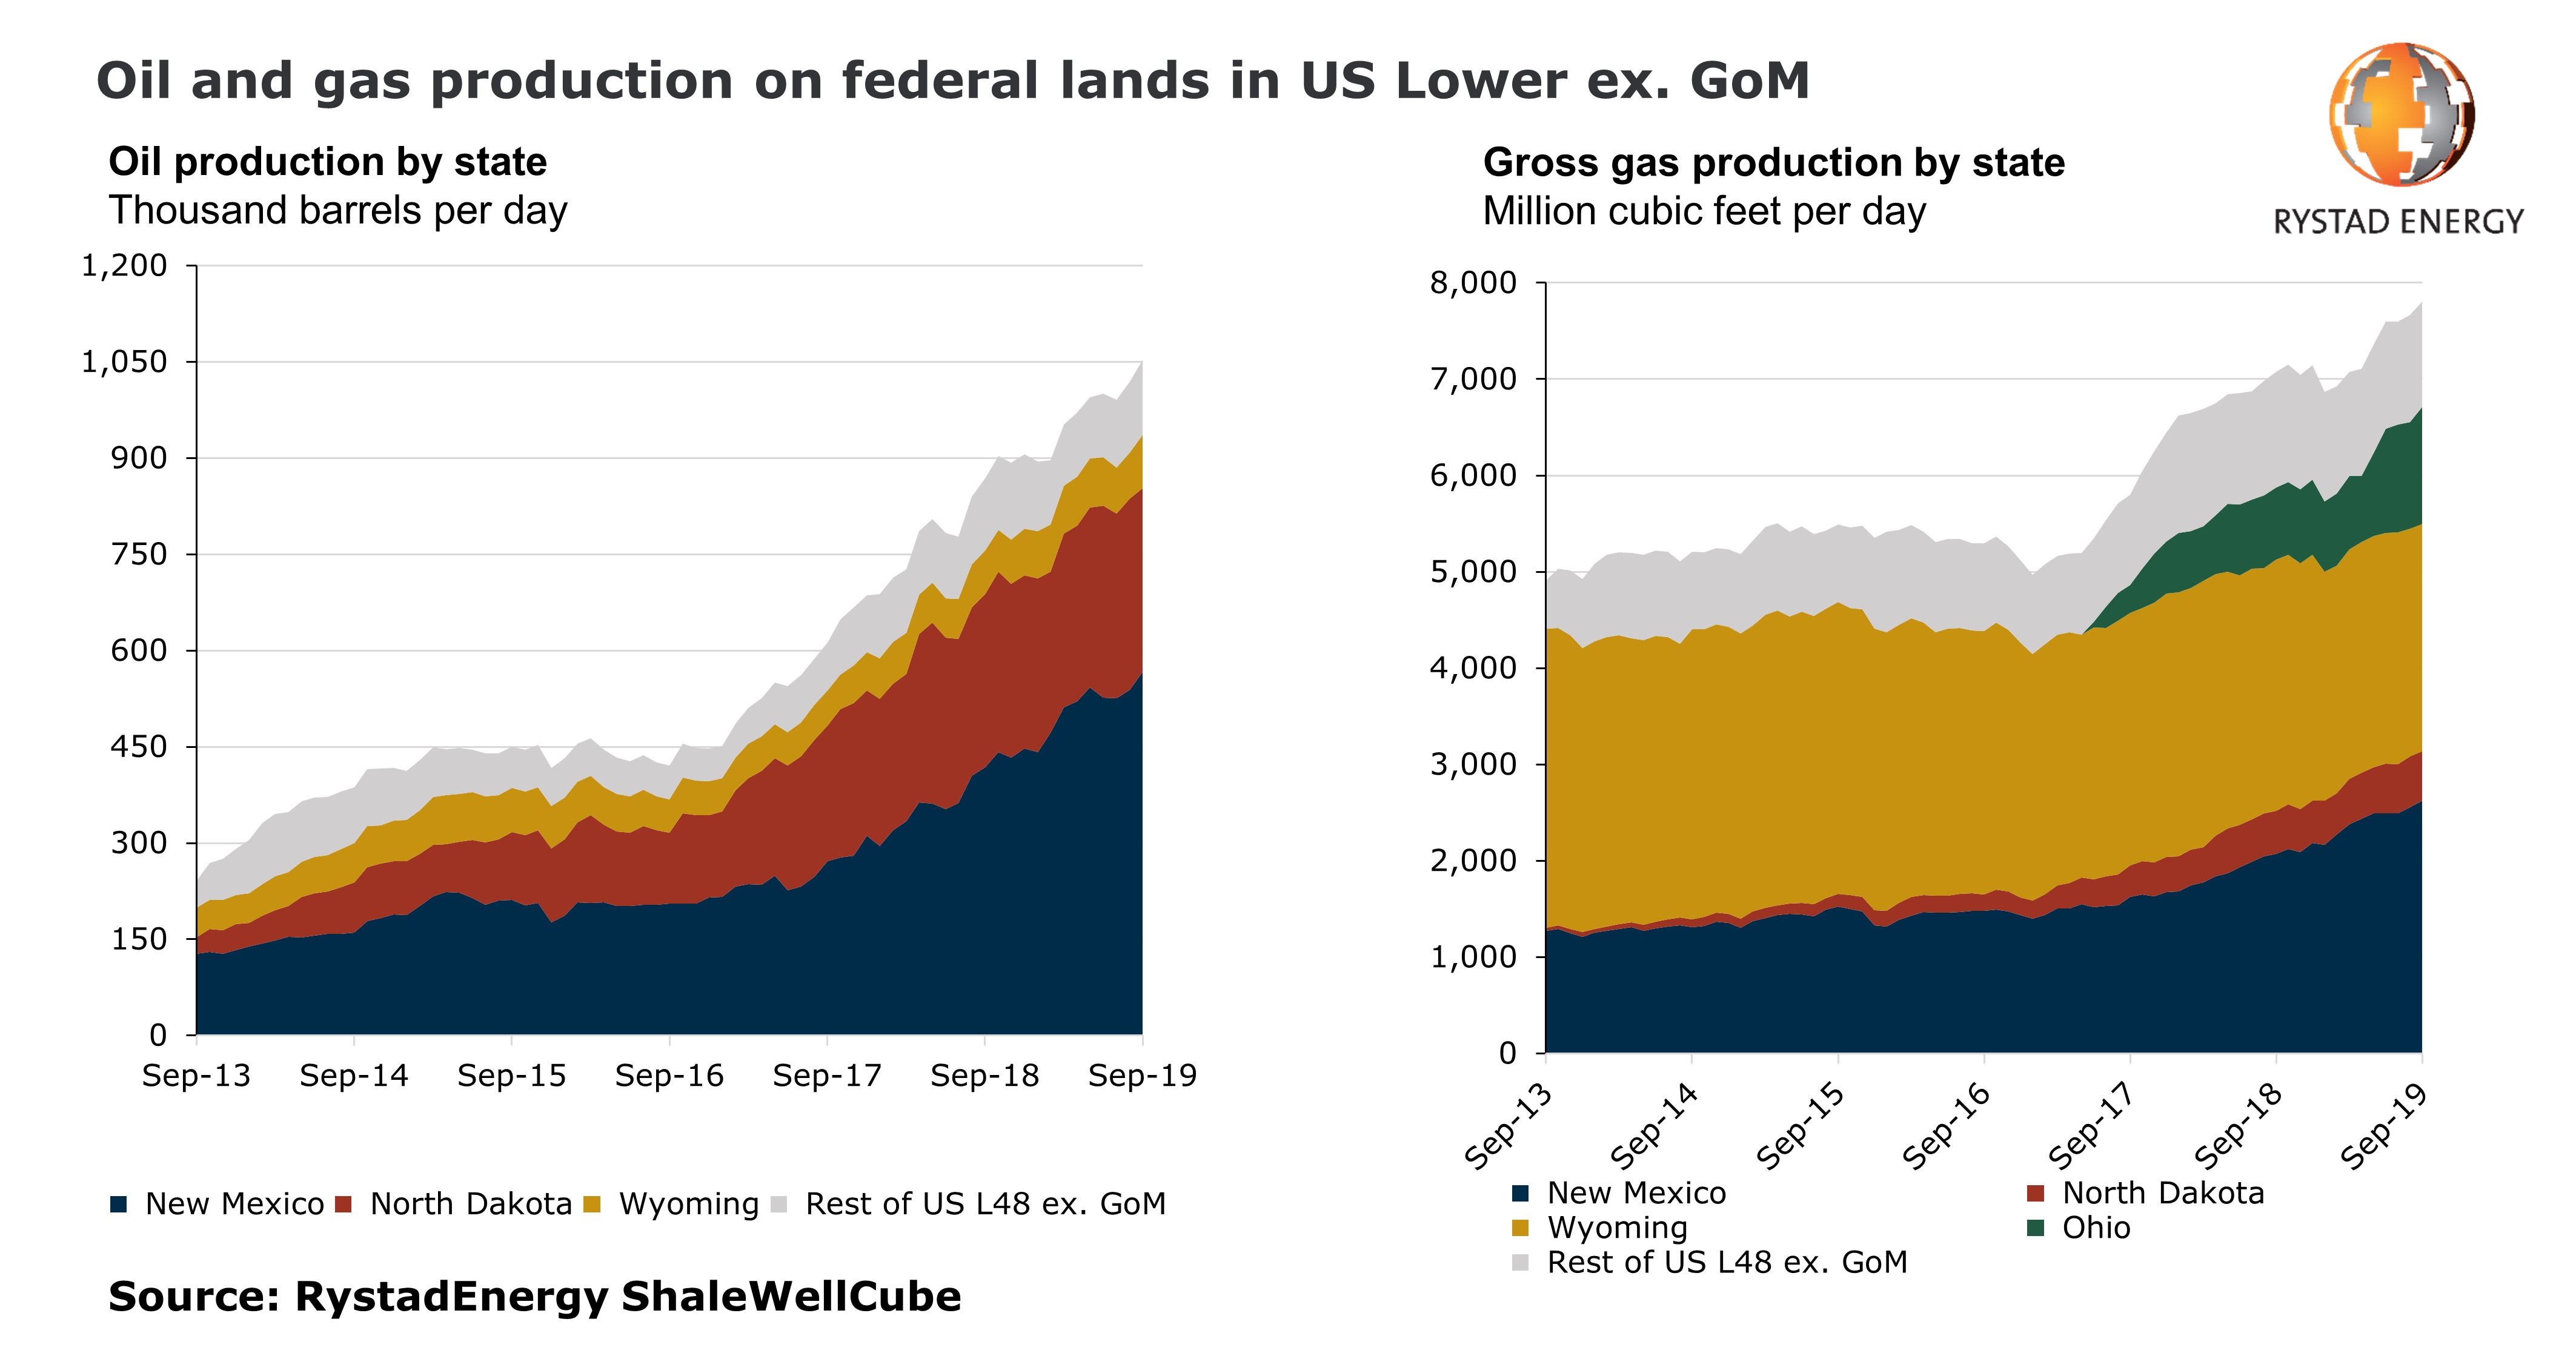 Chart showing oil and gas production on federal lands in US Lower ex. GoM